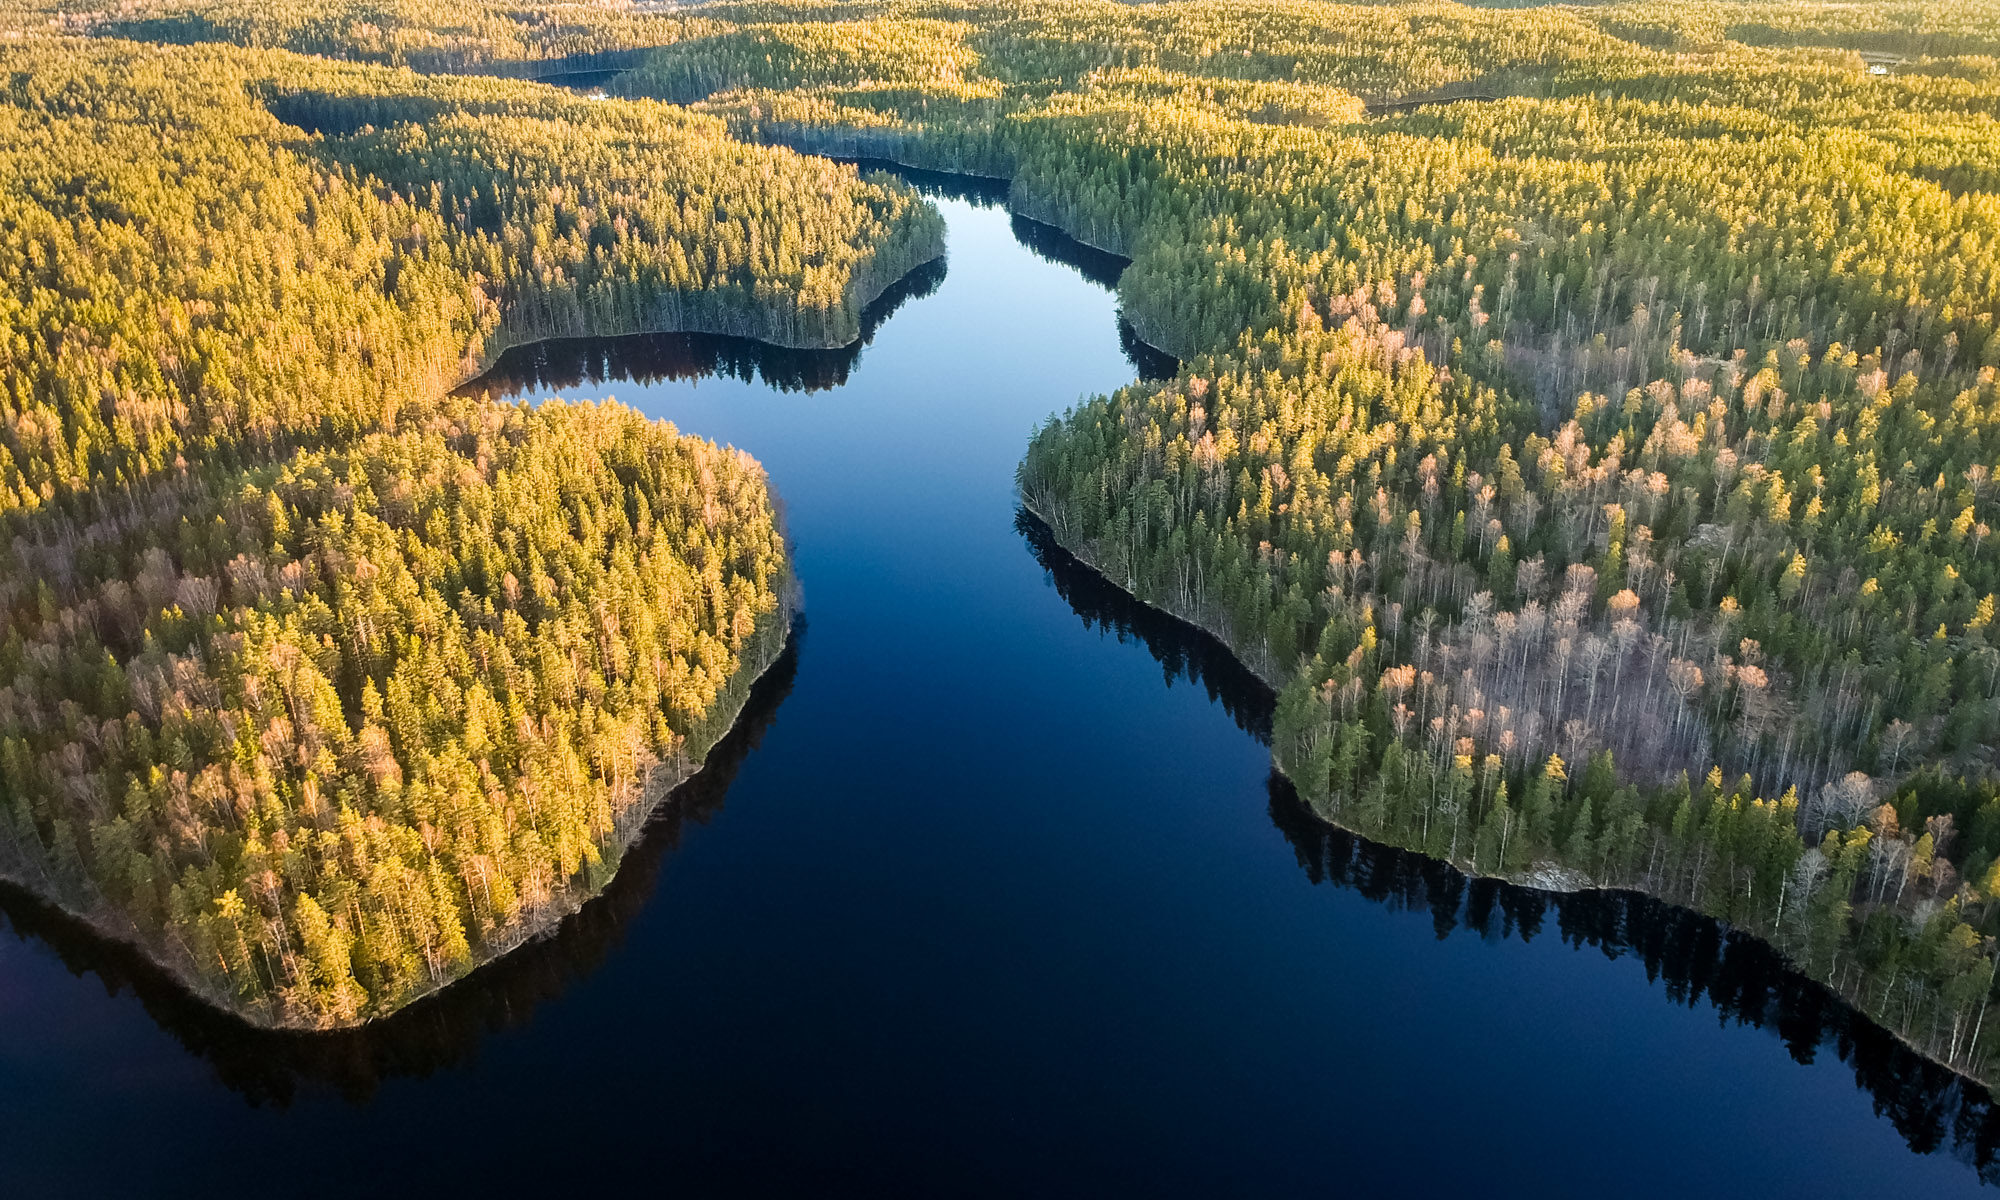 Nuuksio National Park in spring. Evening in May, calm lake at the sunset. Nature near Helsinki, Finland.